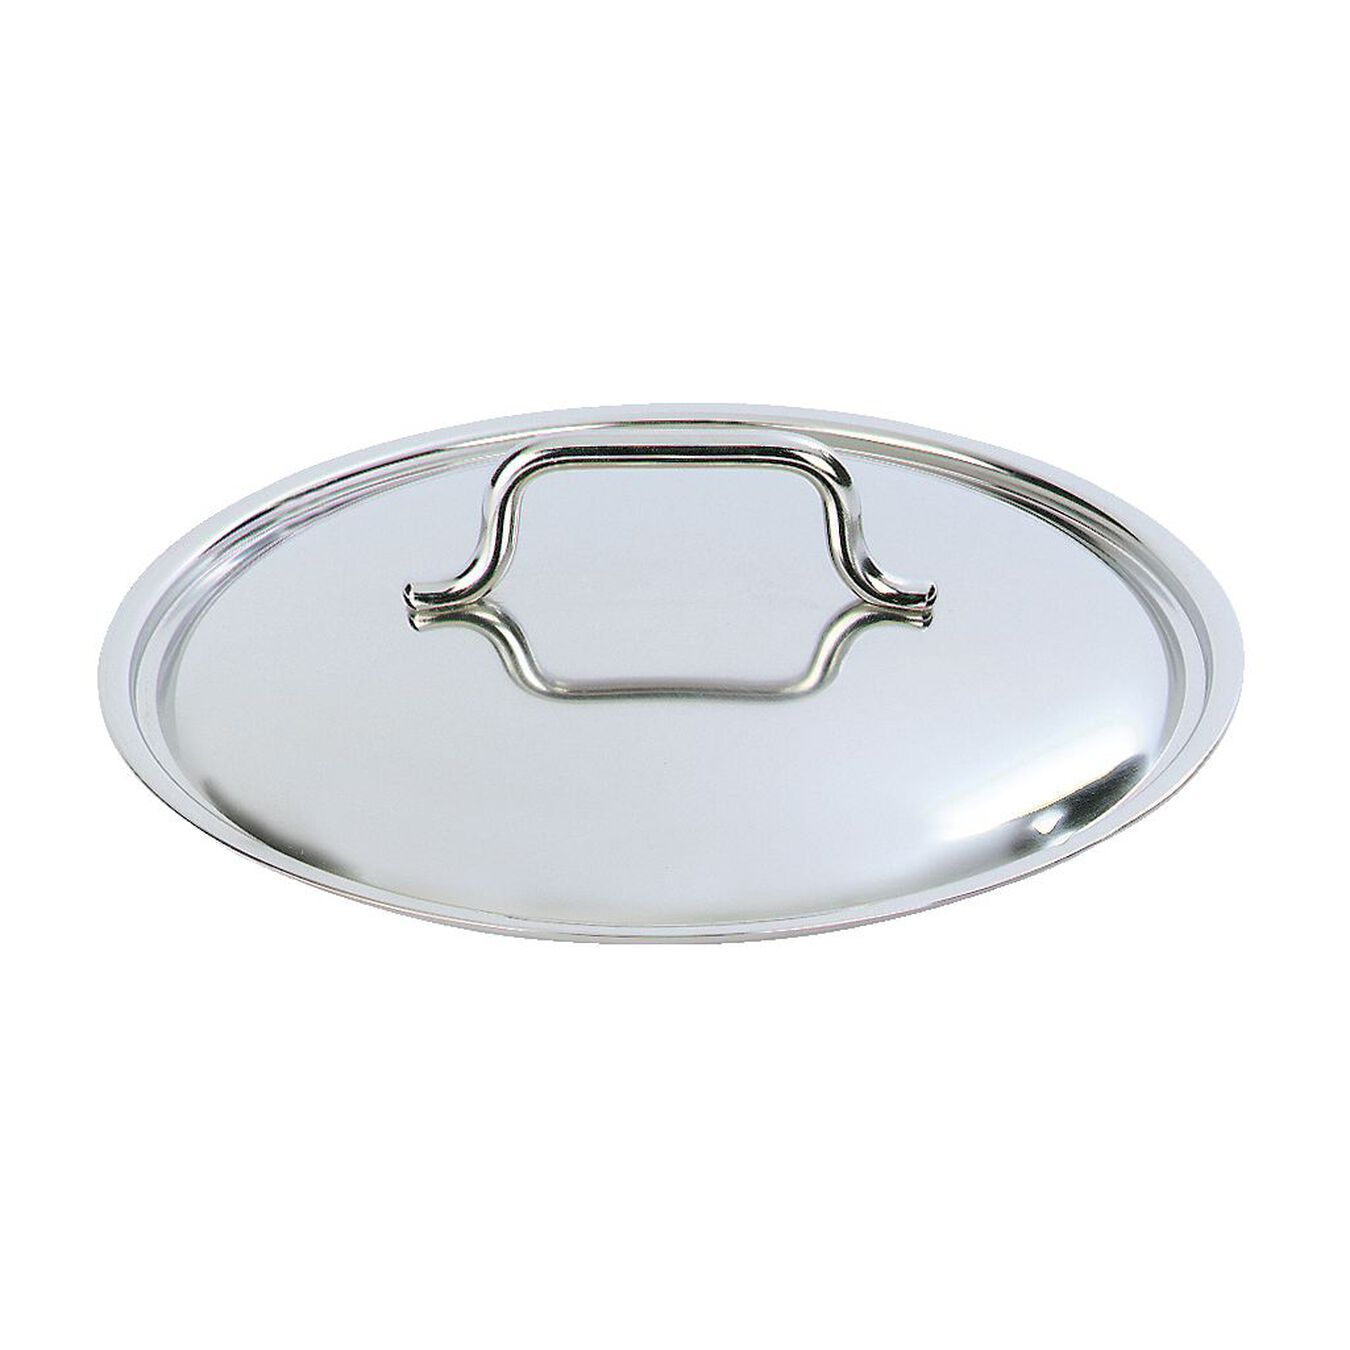 Couvercle 18 cm Inox 18/10,,large 1